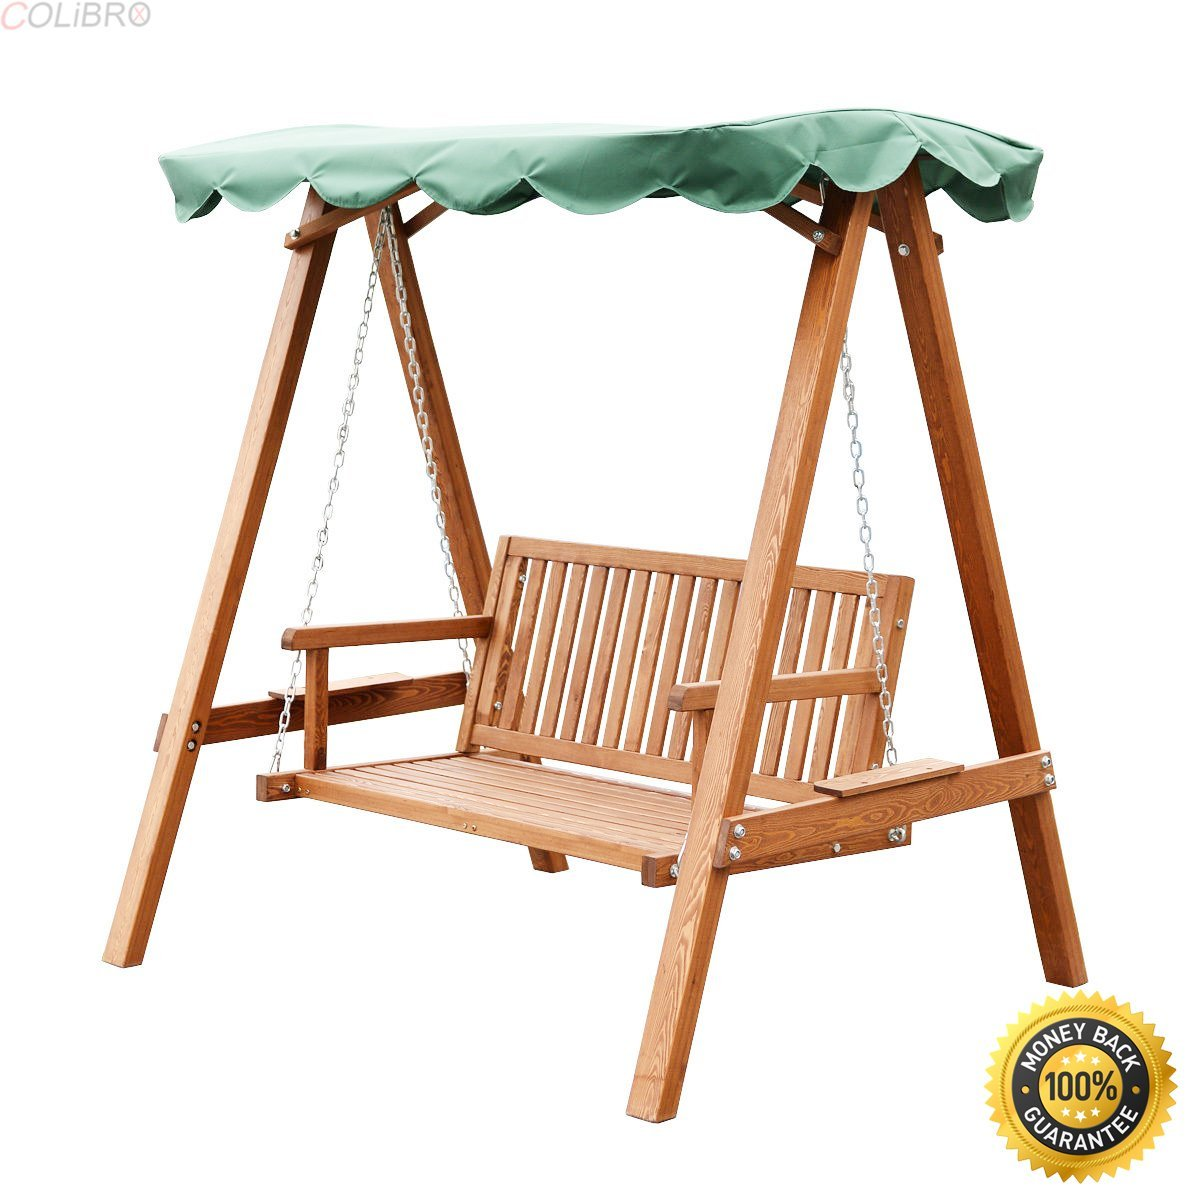 Cheap Swing Chair Wooden Find Swing Chair Wooden Deals On Line At Alibaba Com